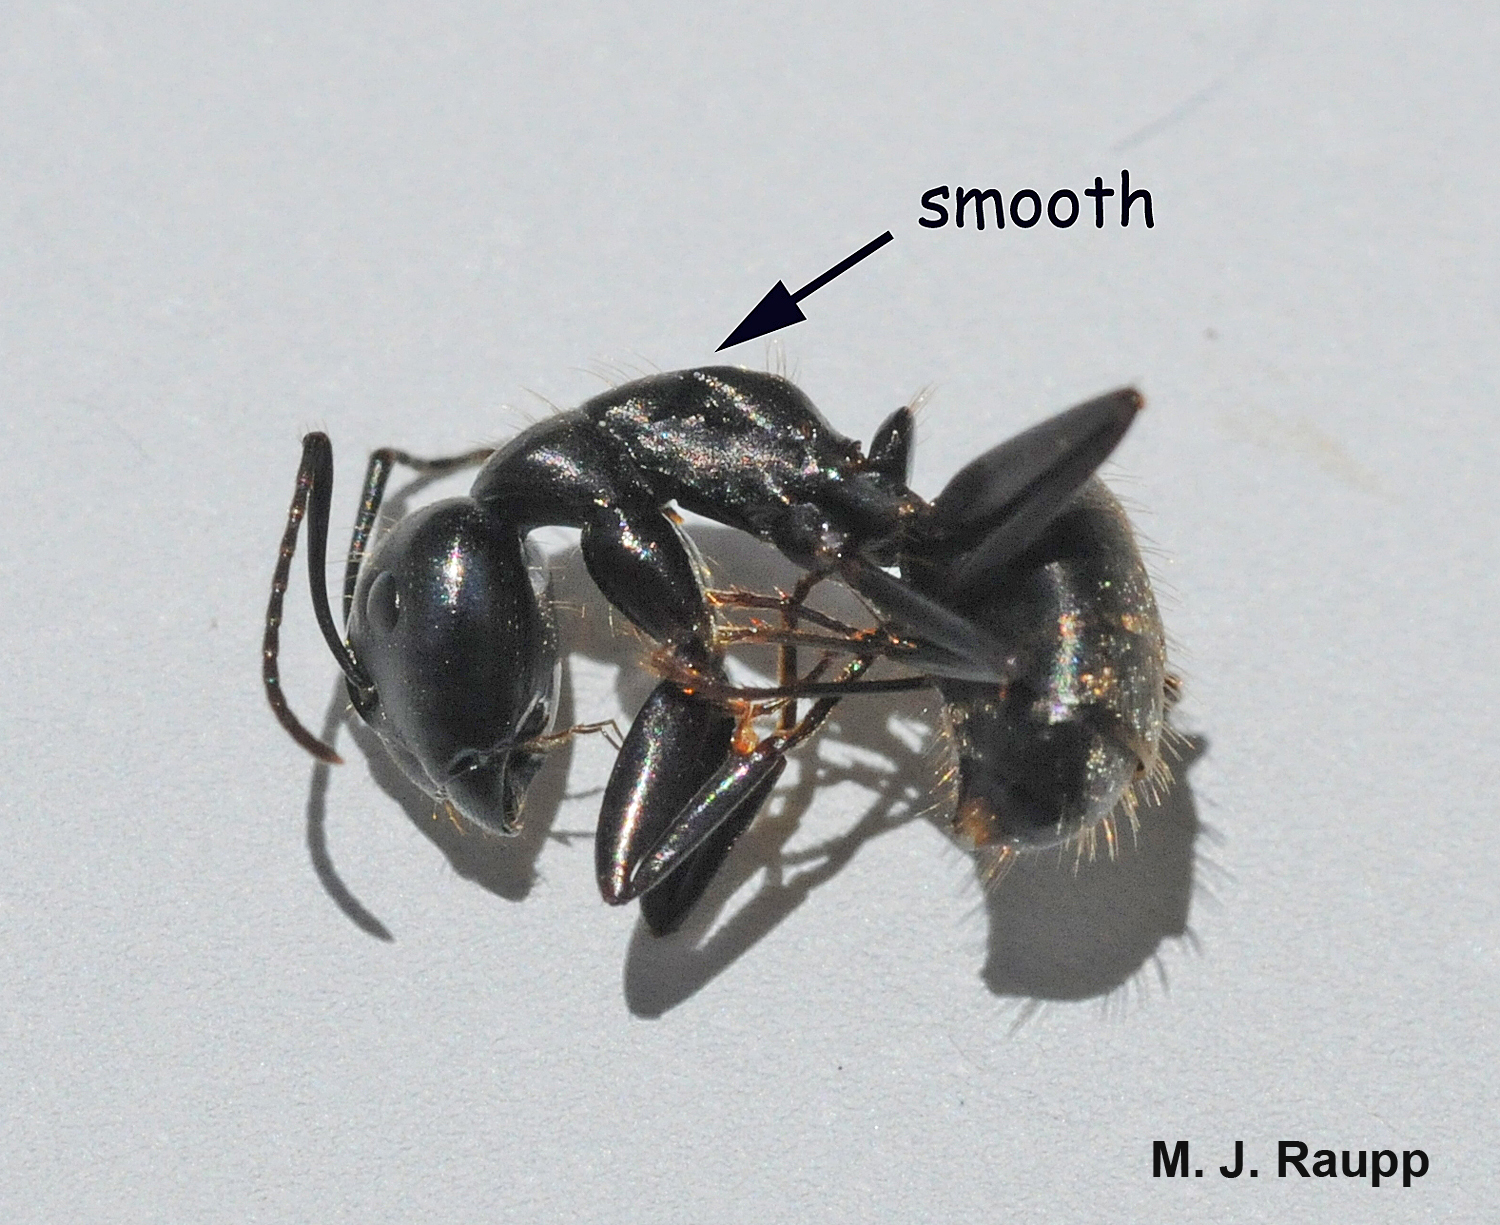 Carpenter ants are differentiated from field ants by the smooth contour of their thorax in profile.